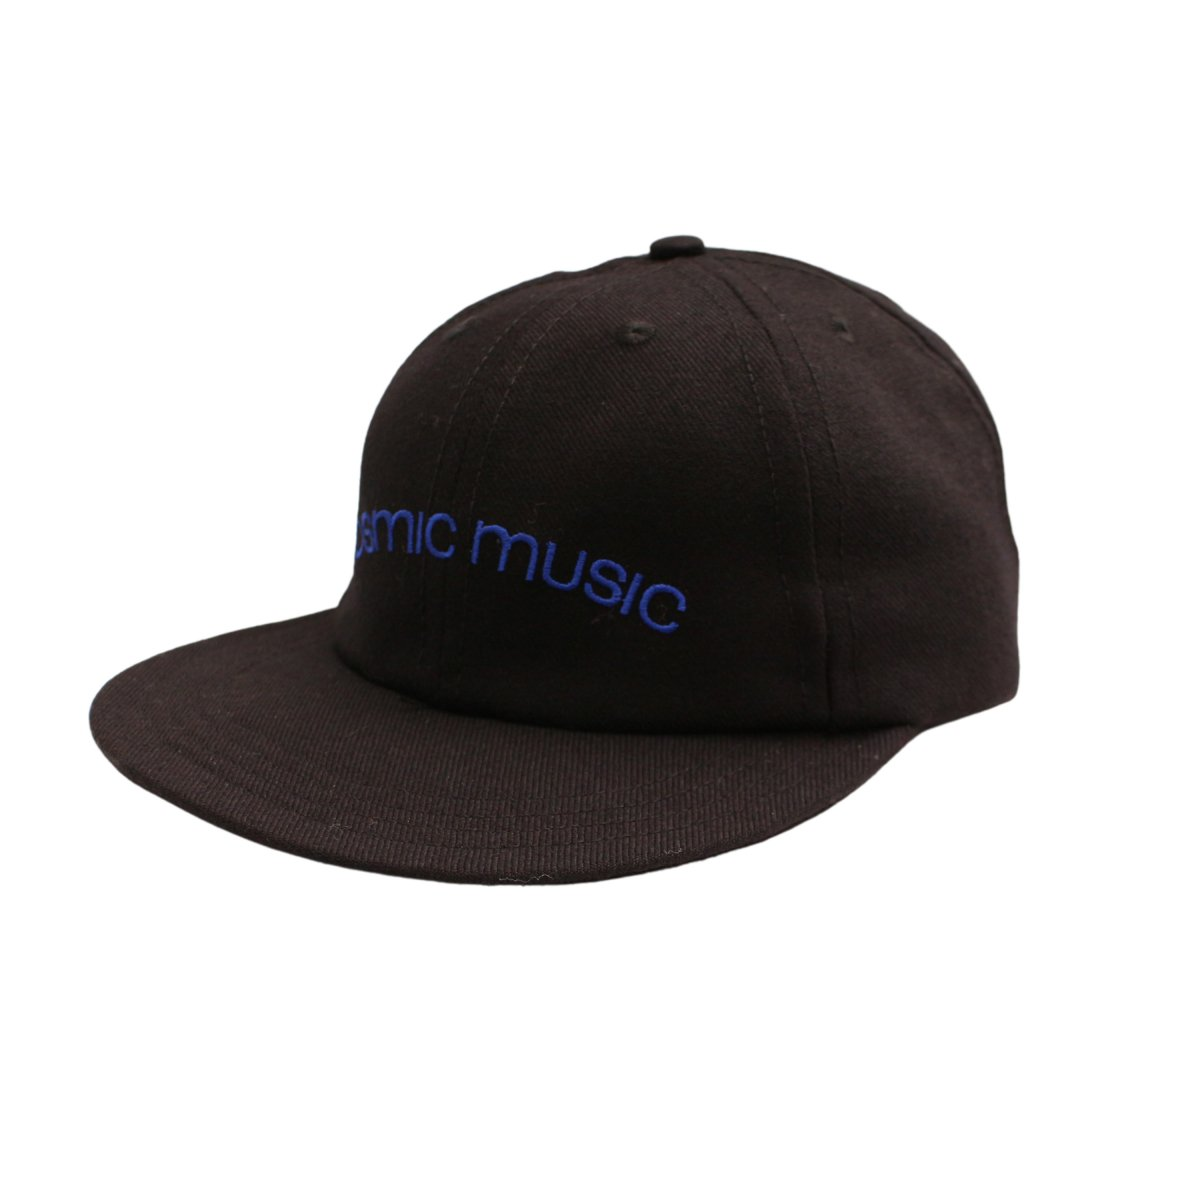 Cosmic Music hat 【BLACK】